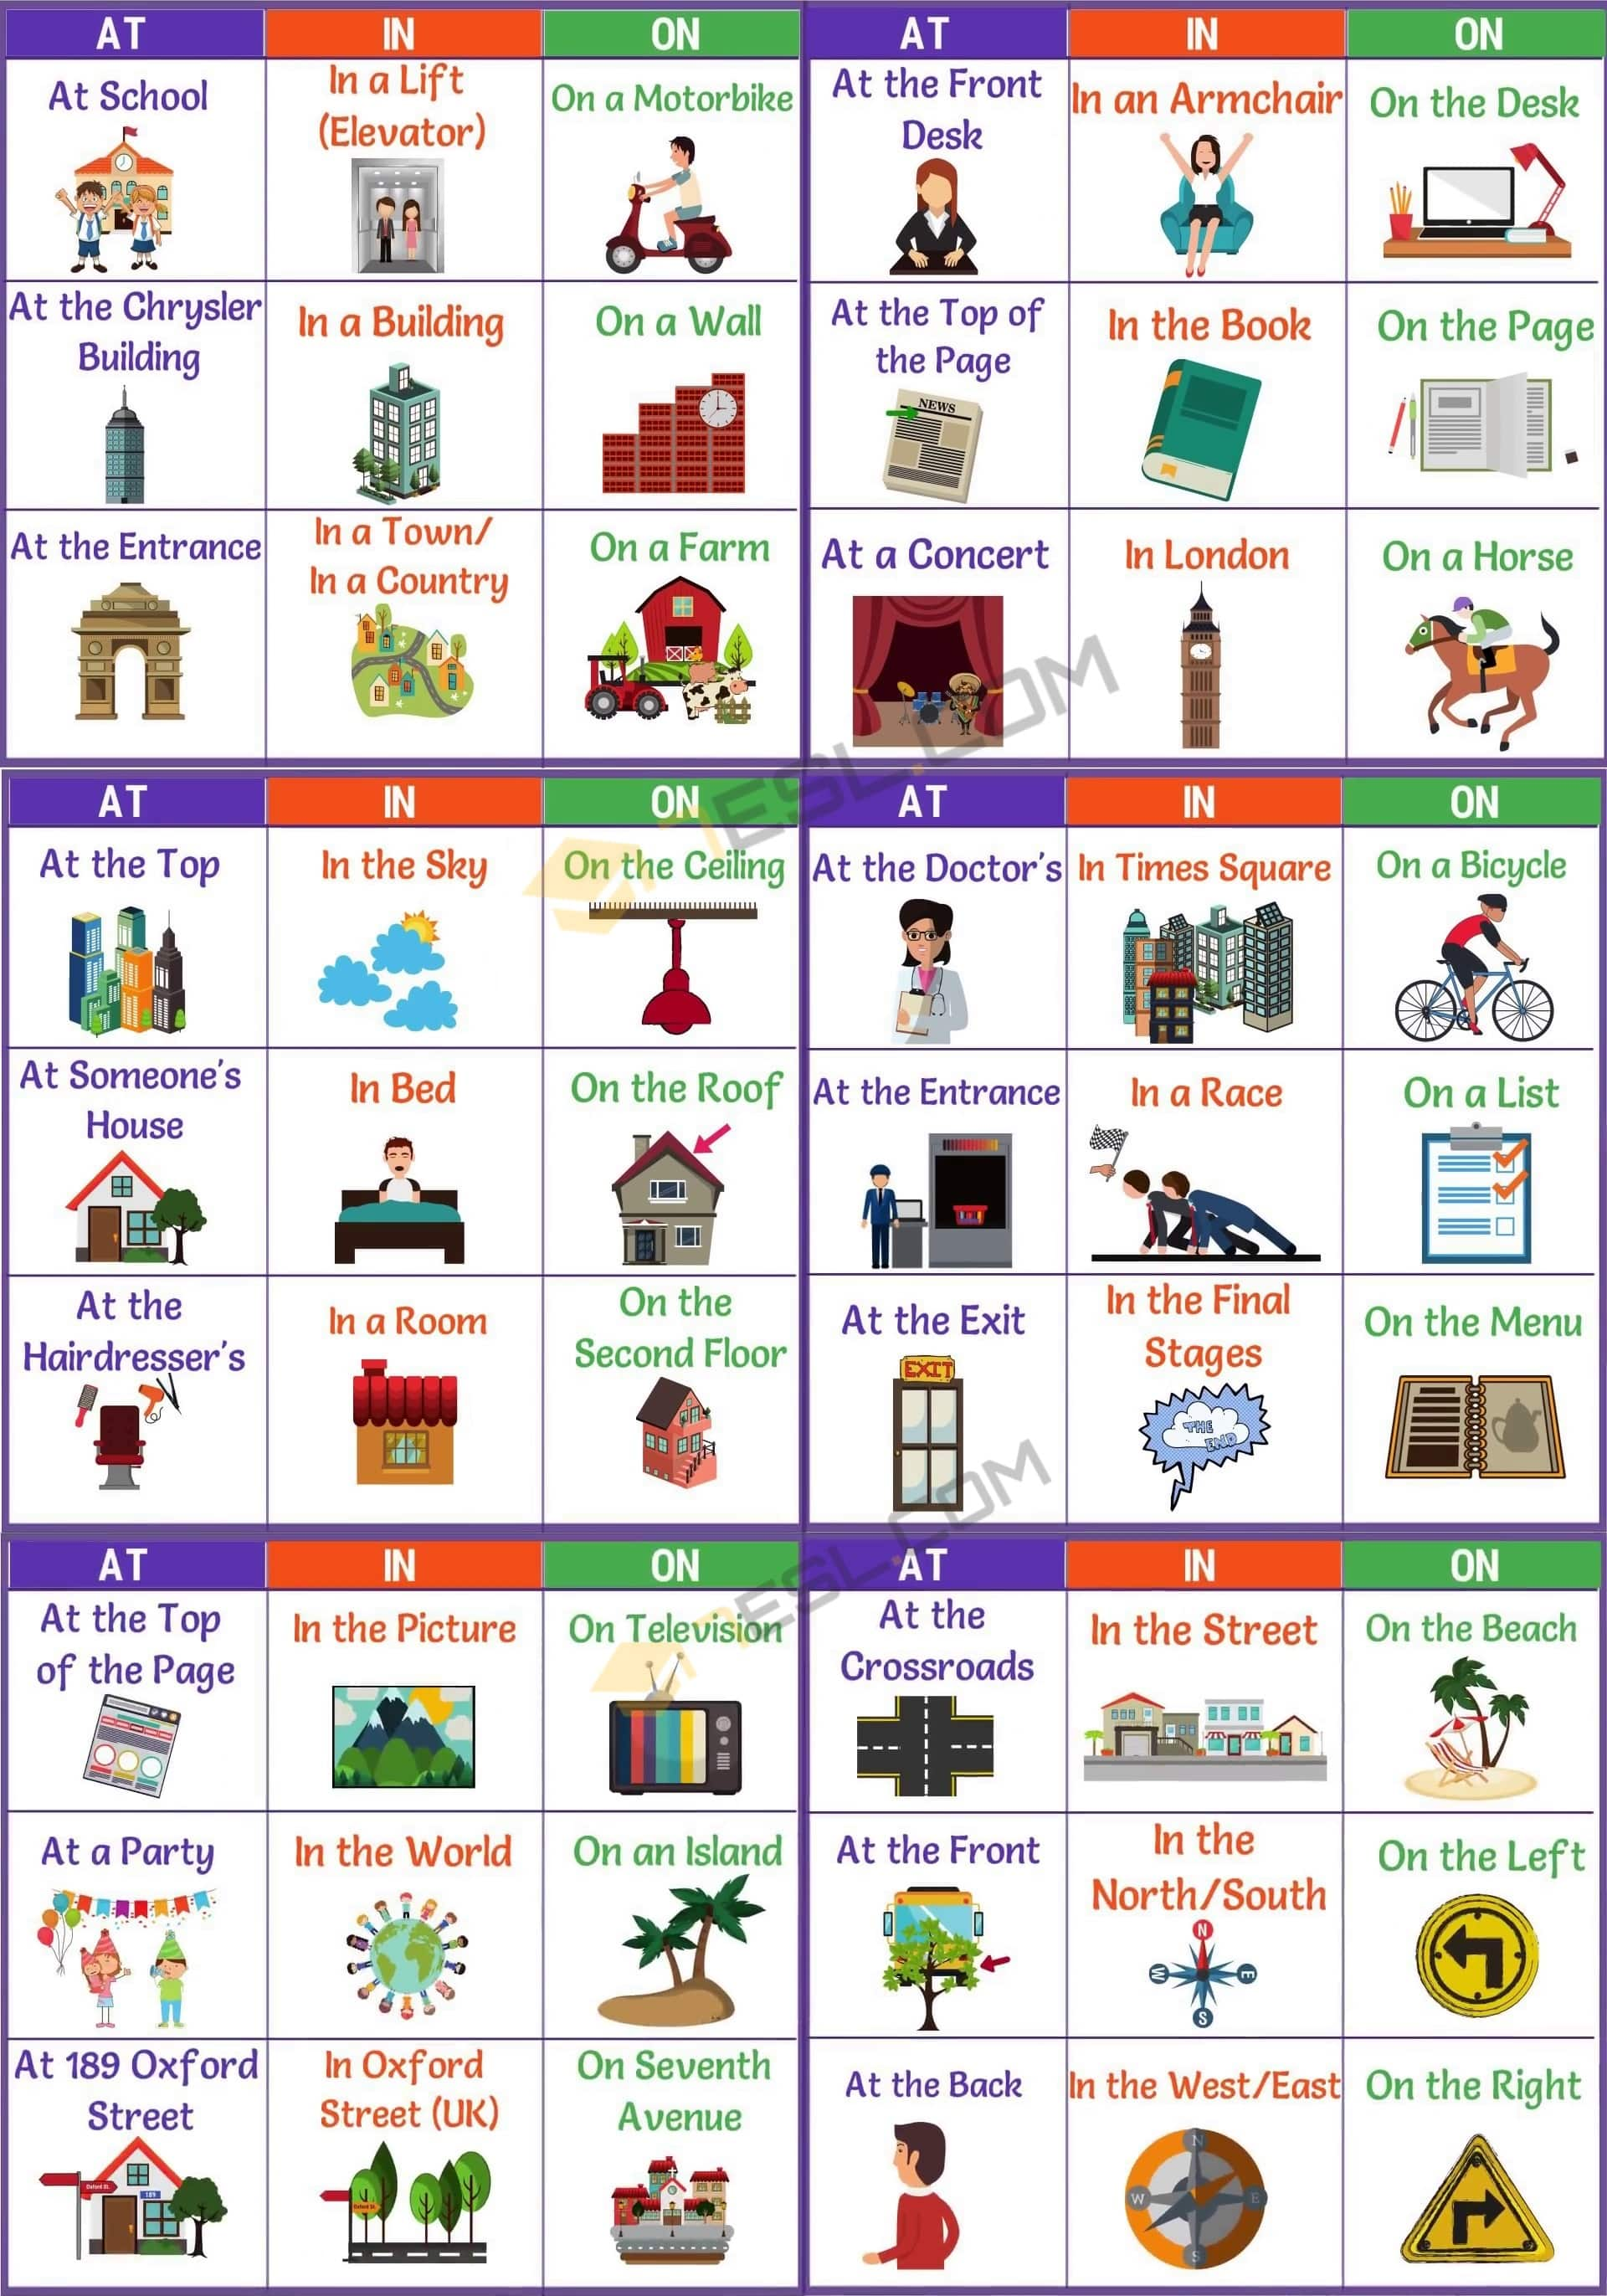 Prepositional Phrase Examples with the Preposition of Time At - In - On | Image